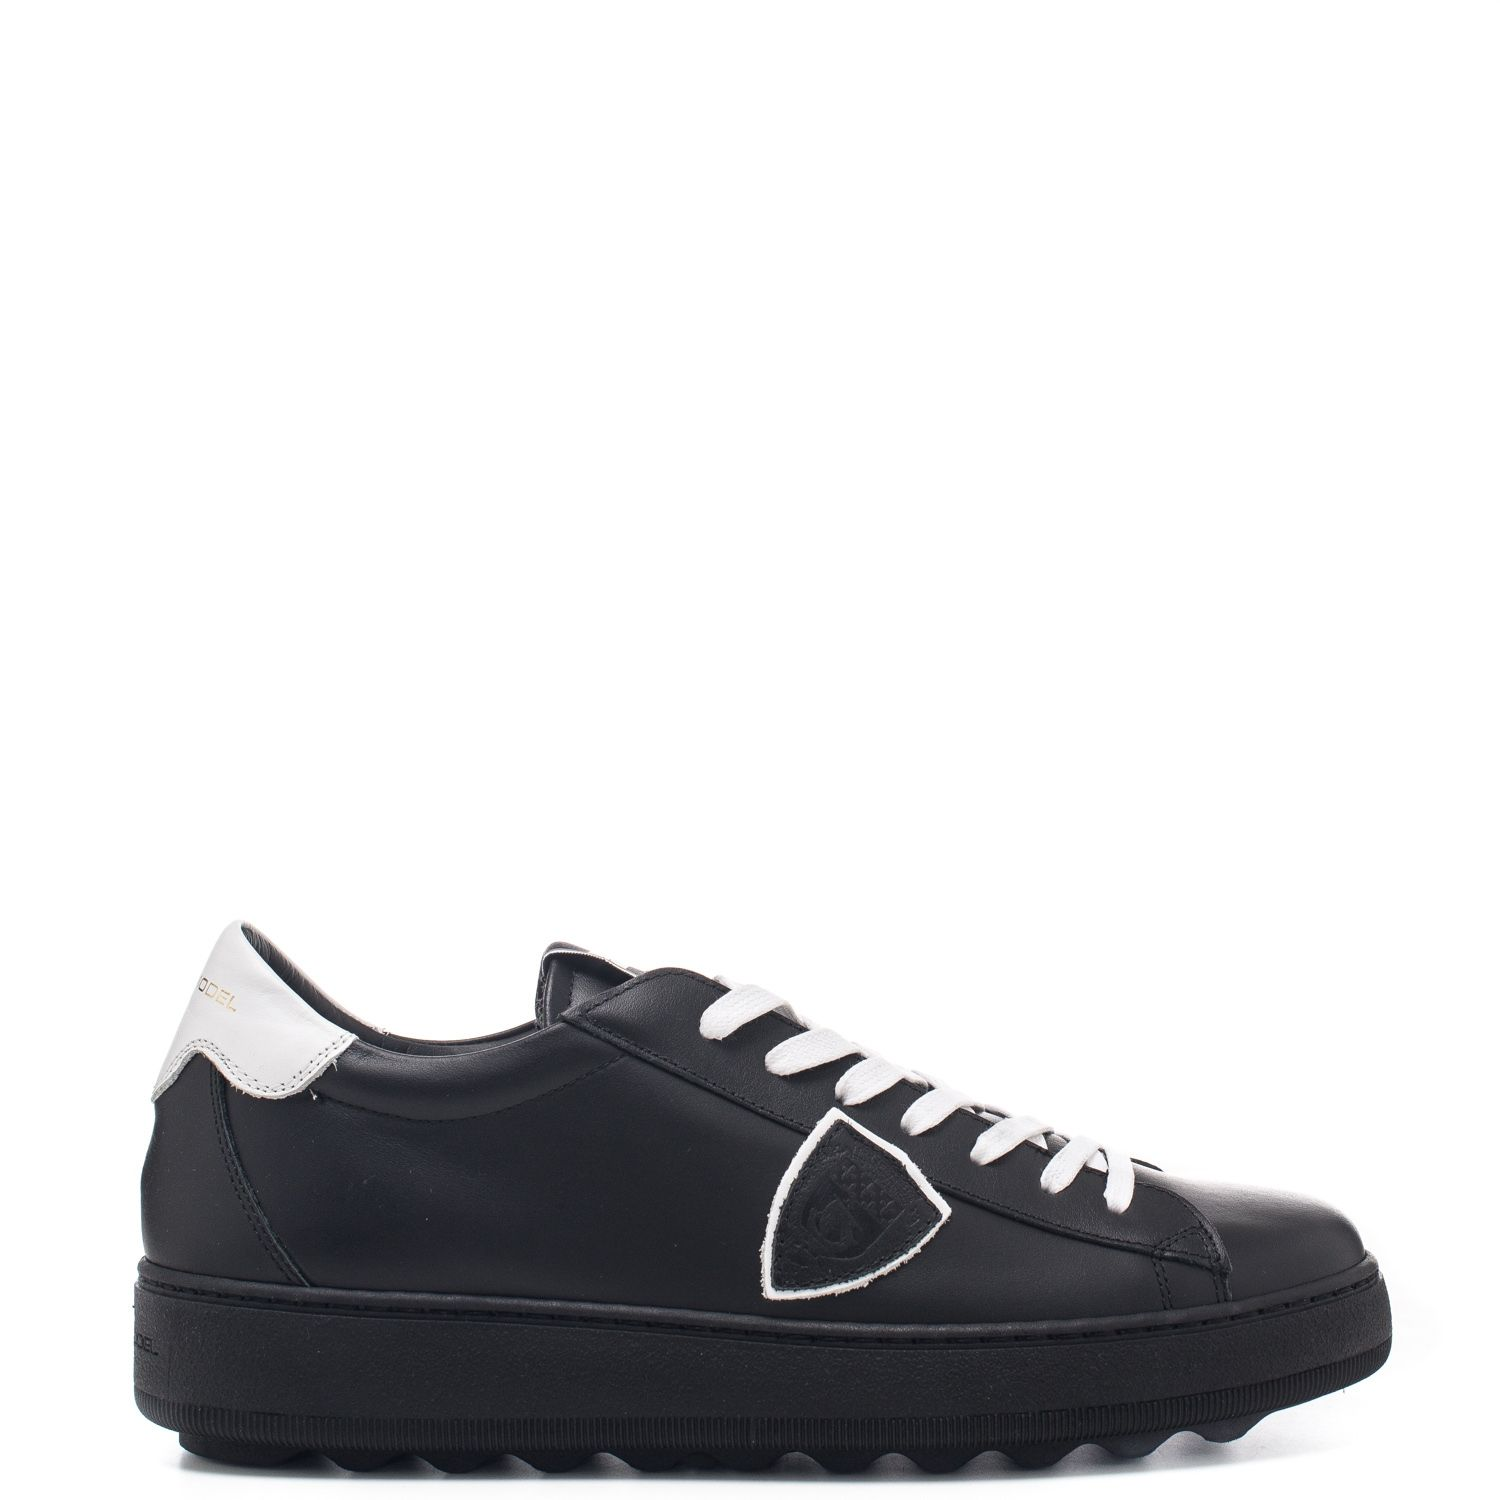 Sneaker in vera pelle con scudetto Philippe Model - 100% Made Italy